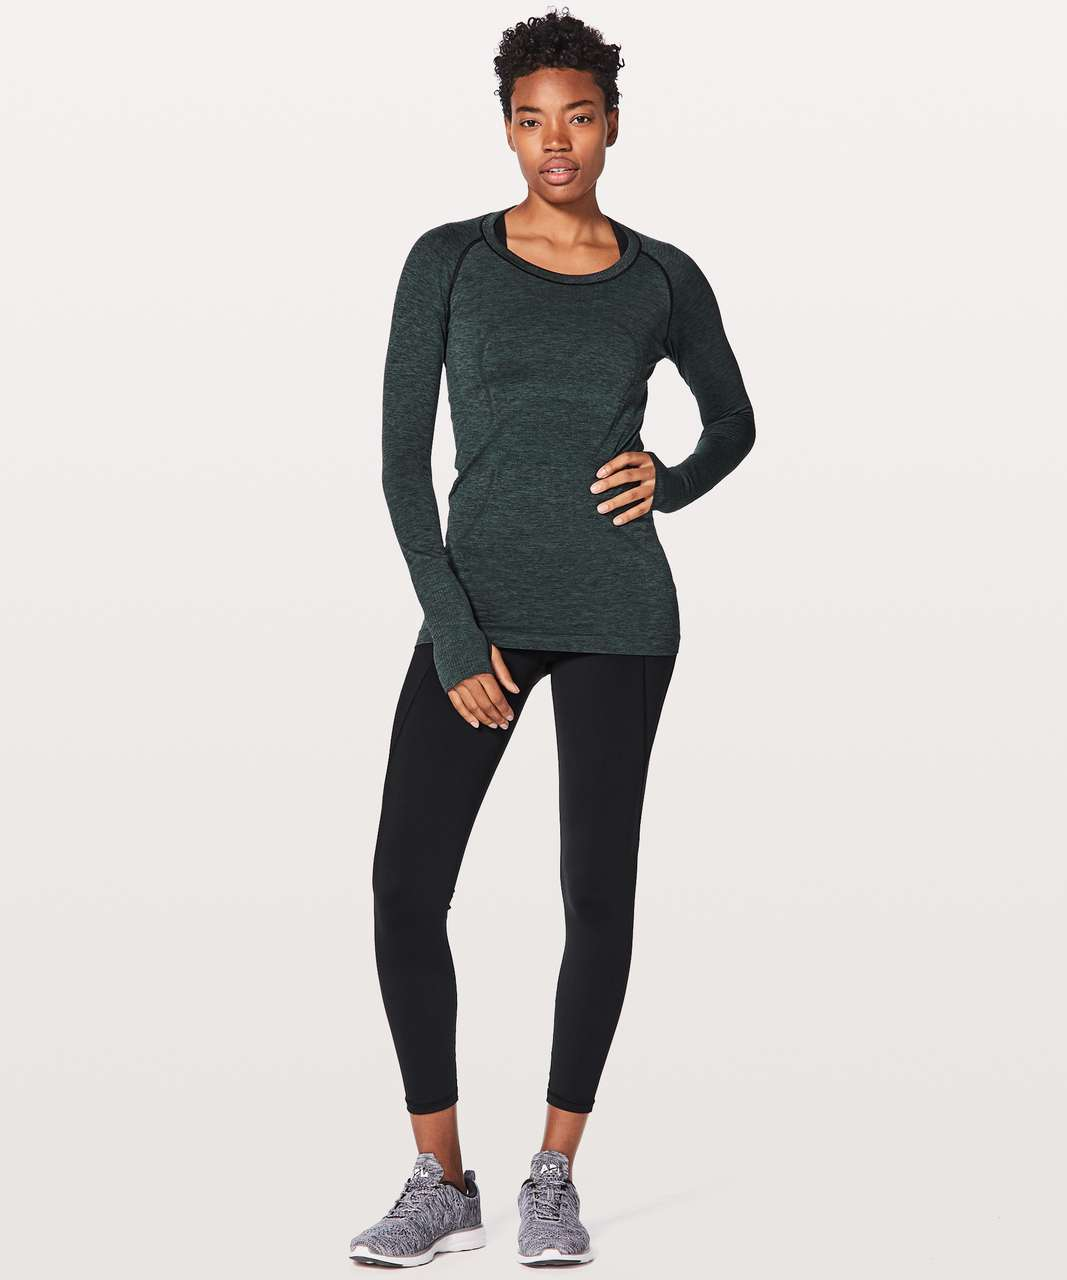 Lululemon Swiftly Tech Long Sleeve Crew - Teal Shadow / Black